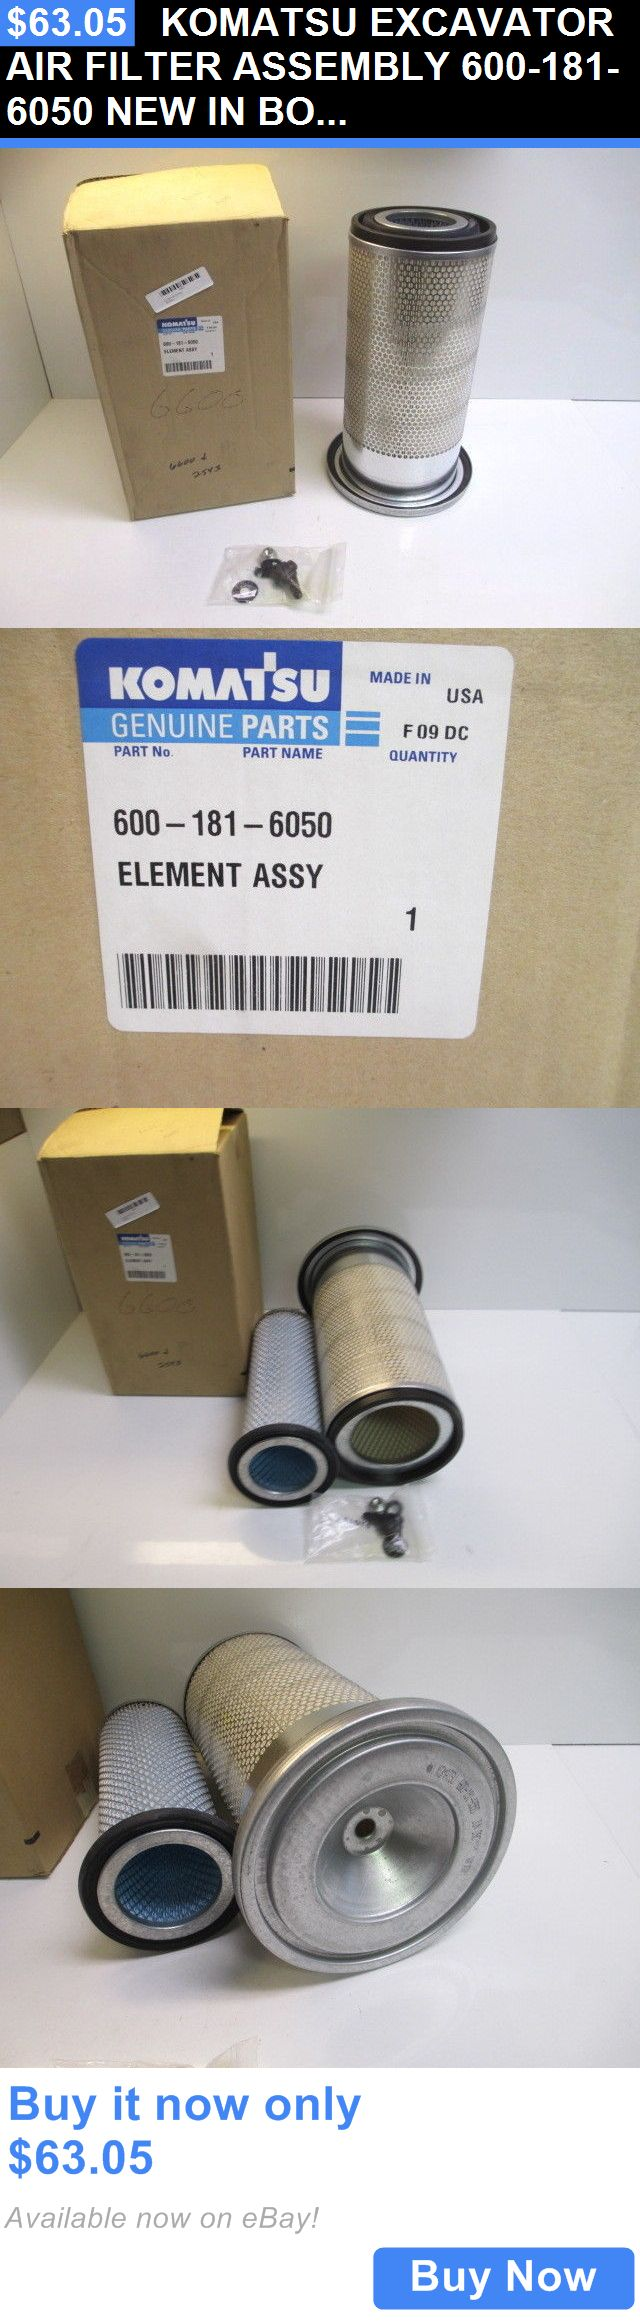 heavy equipment: Komatsu Excavator Air Filter Assembly 600-181-6050 New In Box Heavy Equipment BUY IT NOW ONLY: $63.05